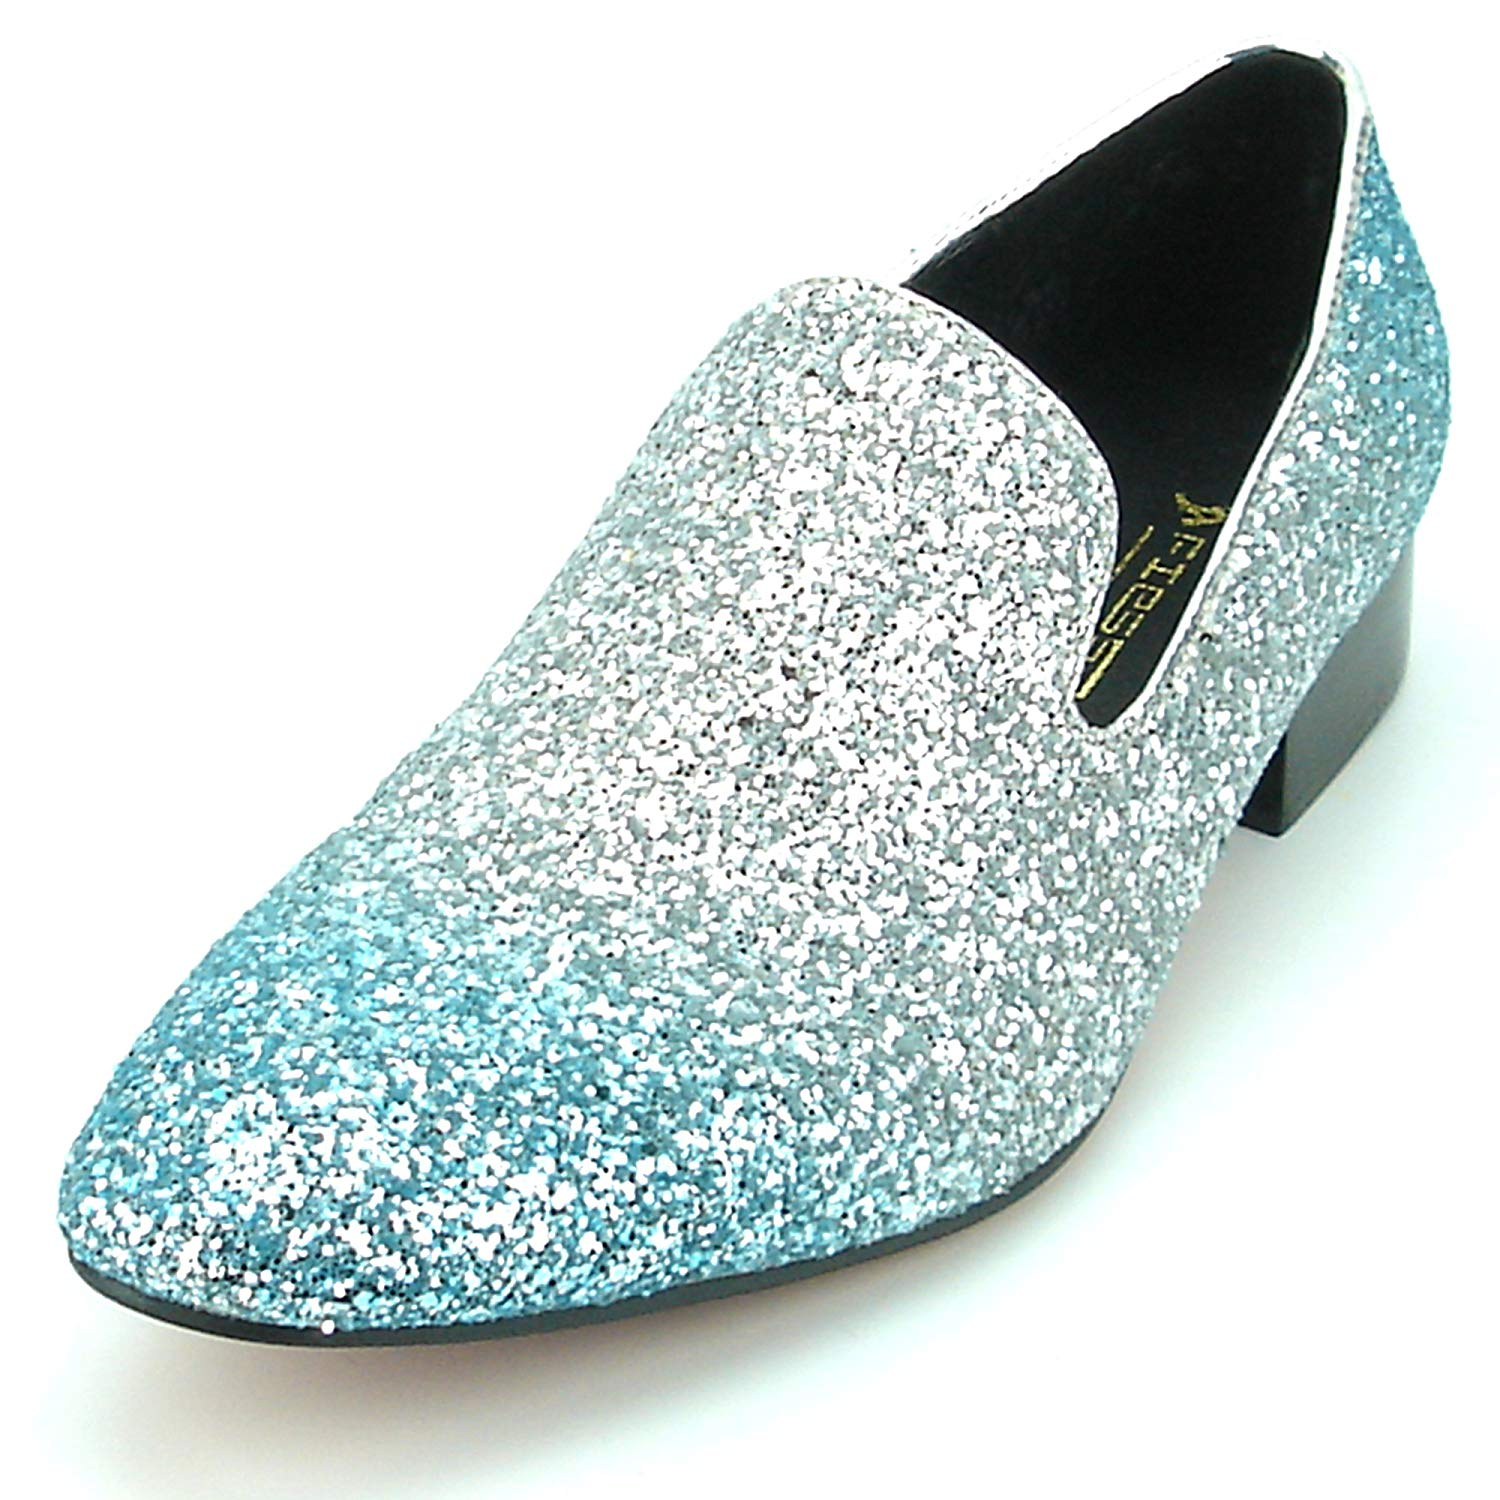 a55f1a5d9 Get Quotations · Fiesso by Aurelio Garcia FI-7156 Silver Blue Glitter Slip  on Loafer - European Shoes